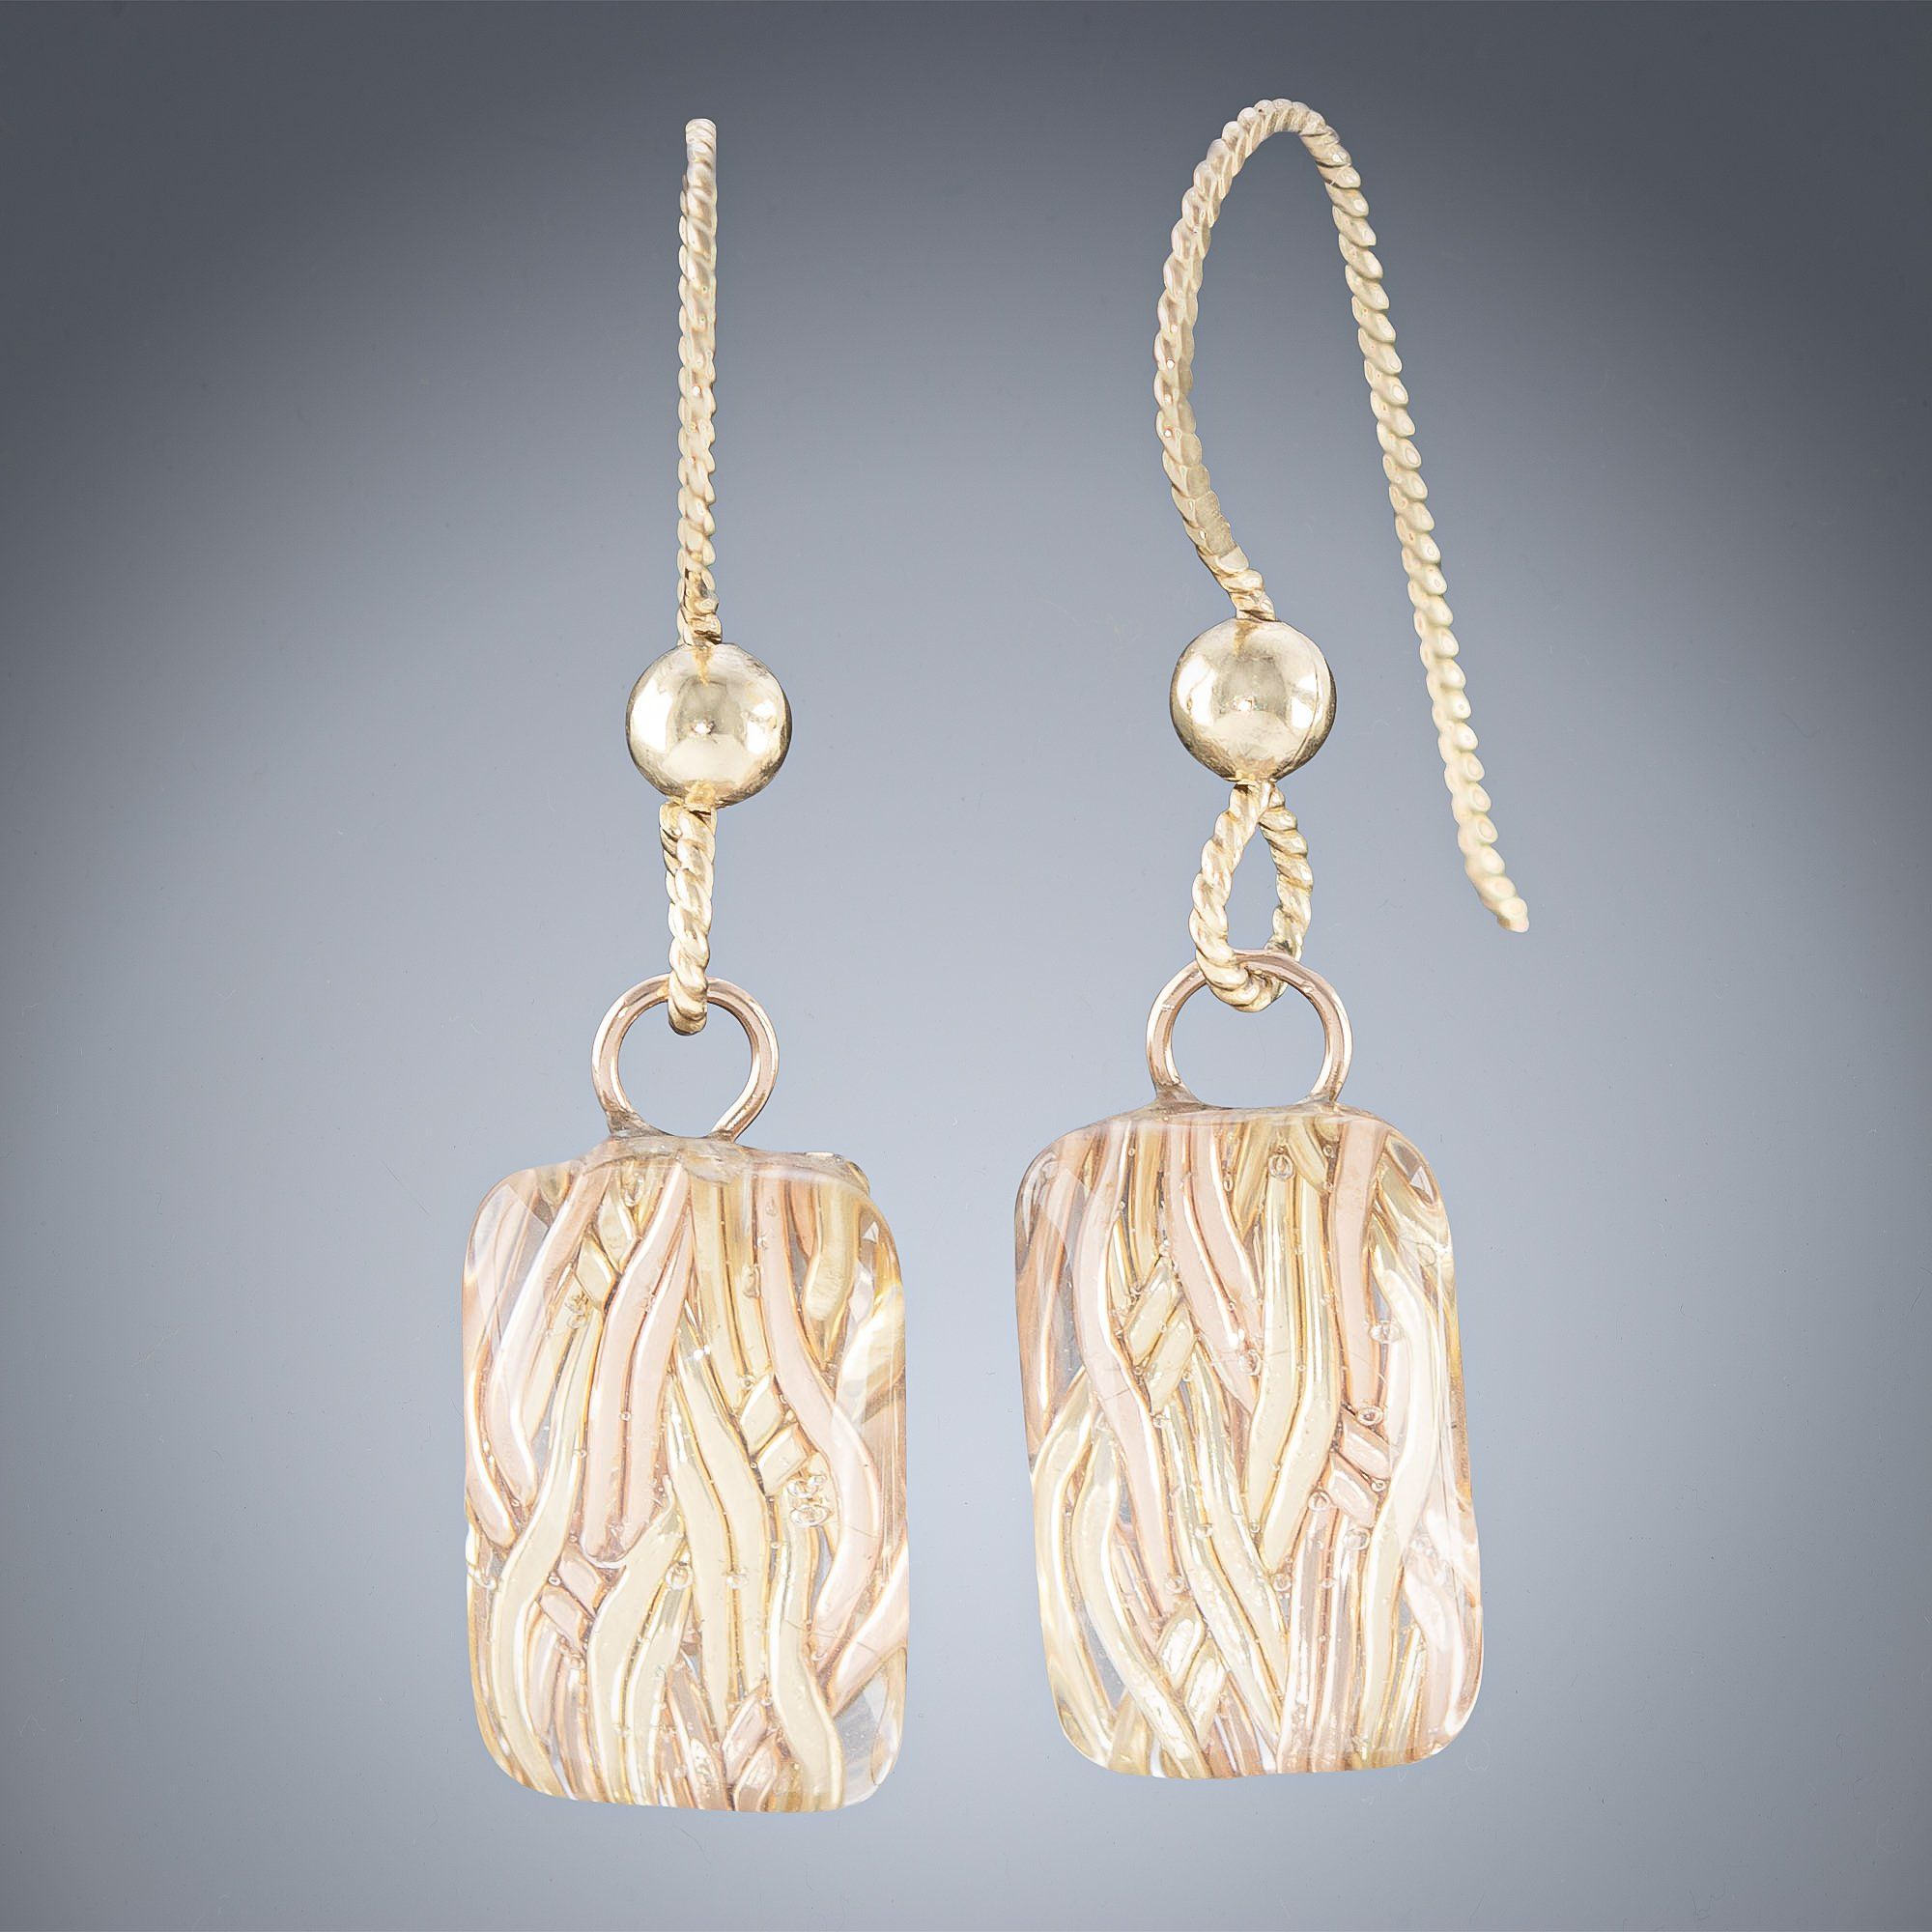 Woven Metal Raindrops in Rectangle: Sparkly Gold Drop Dangle Earrings in Silver or Gold